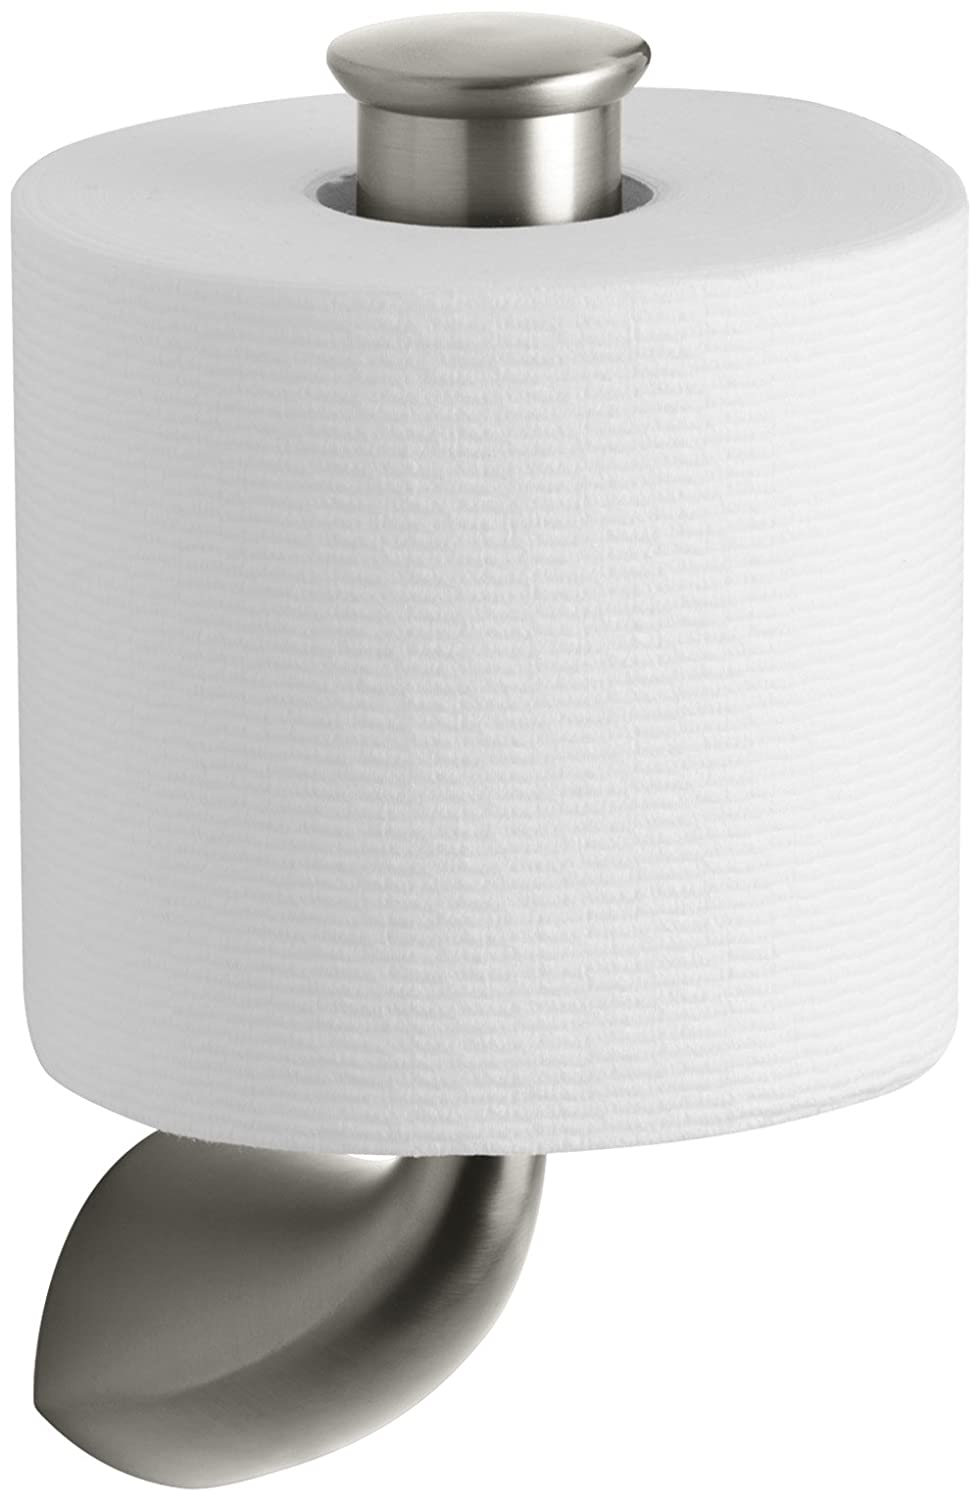 Kohler KBN Alteo Vertical Tissue Holder Vibrant Brushed - Kohler bathroom accessories chrome